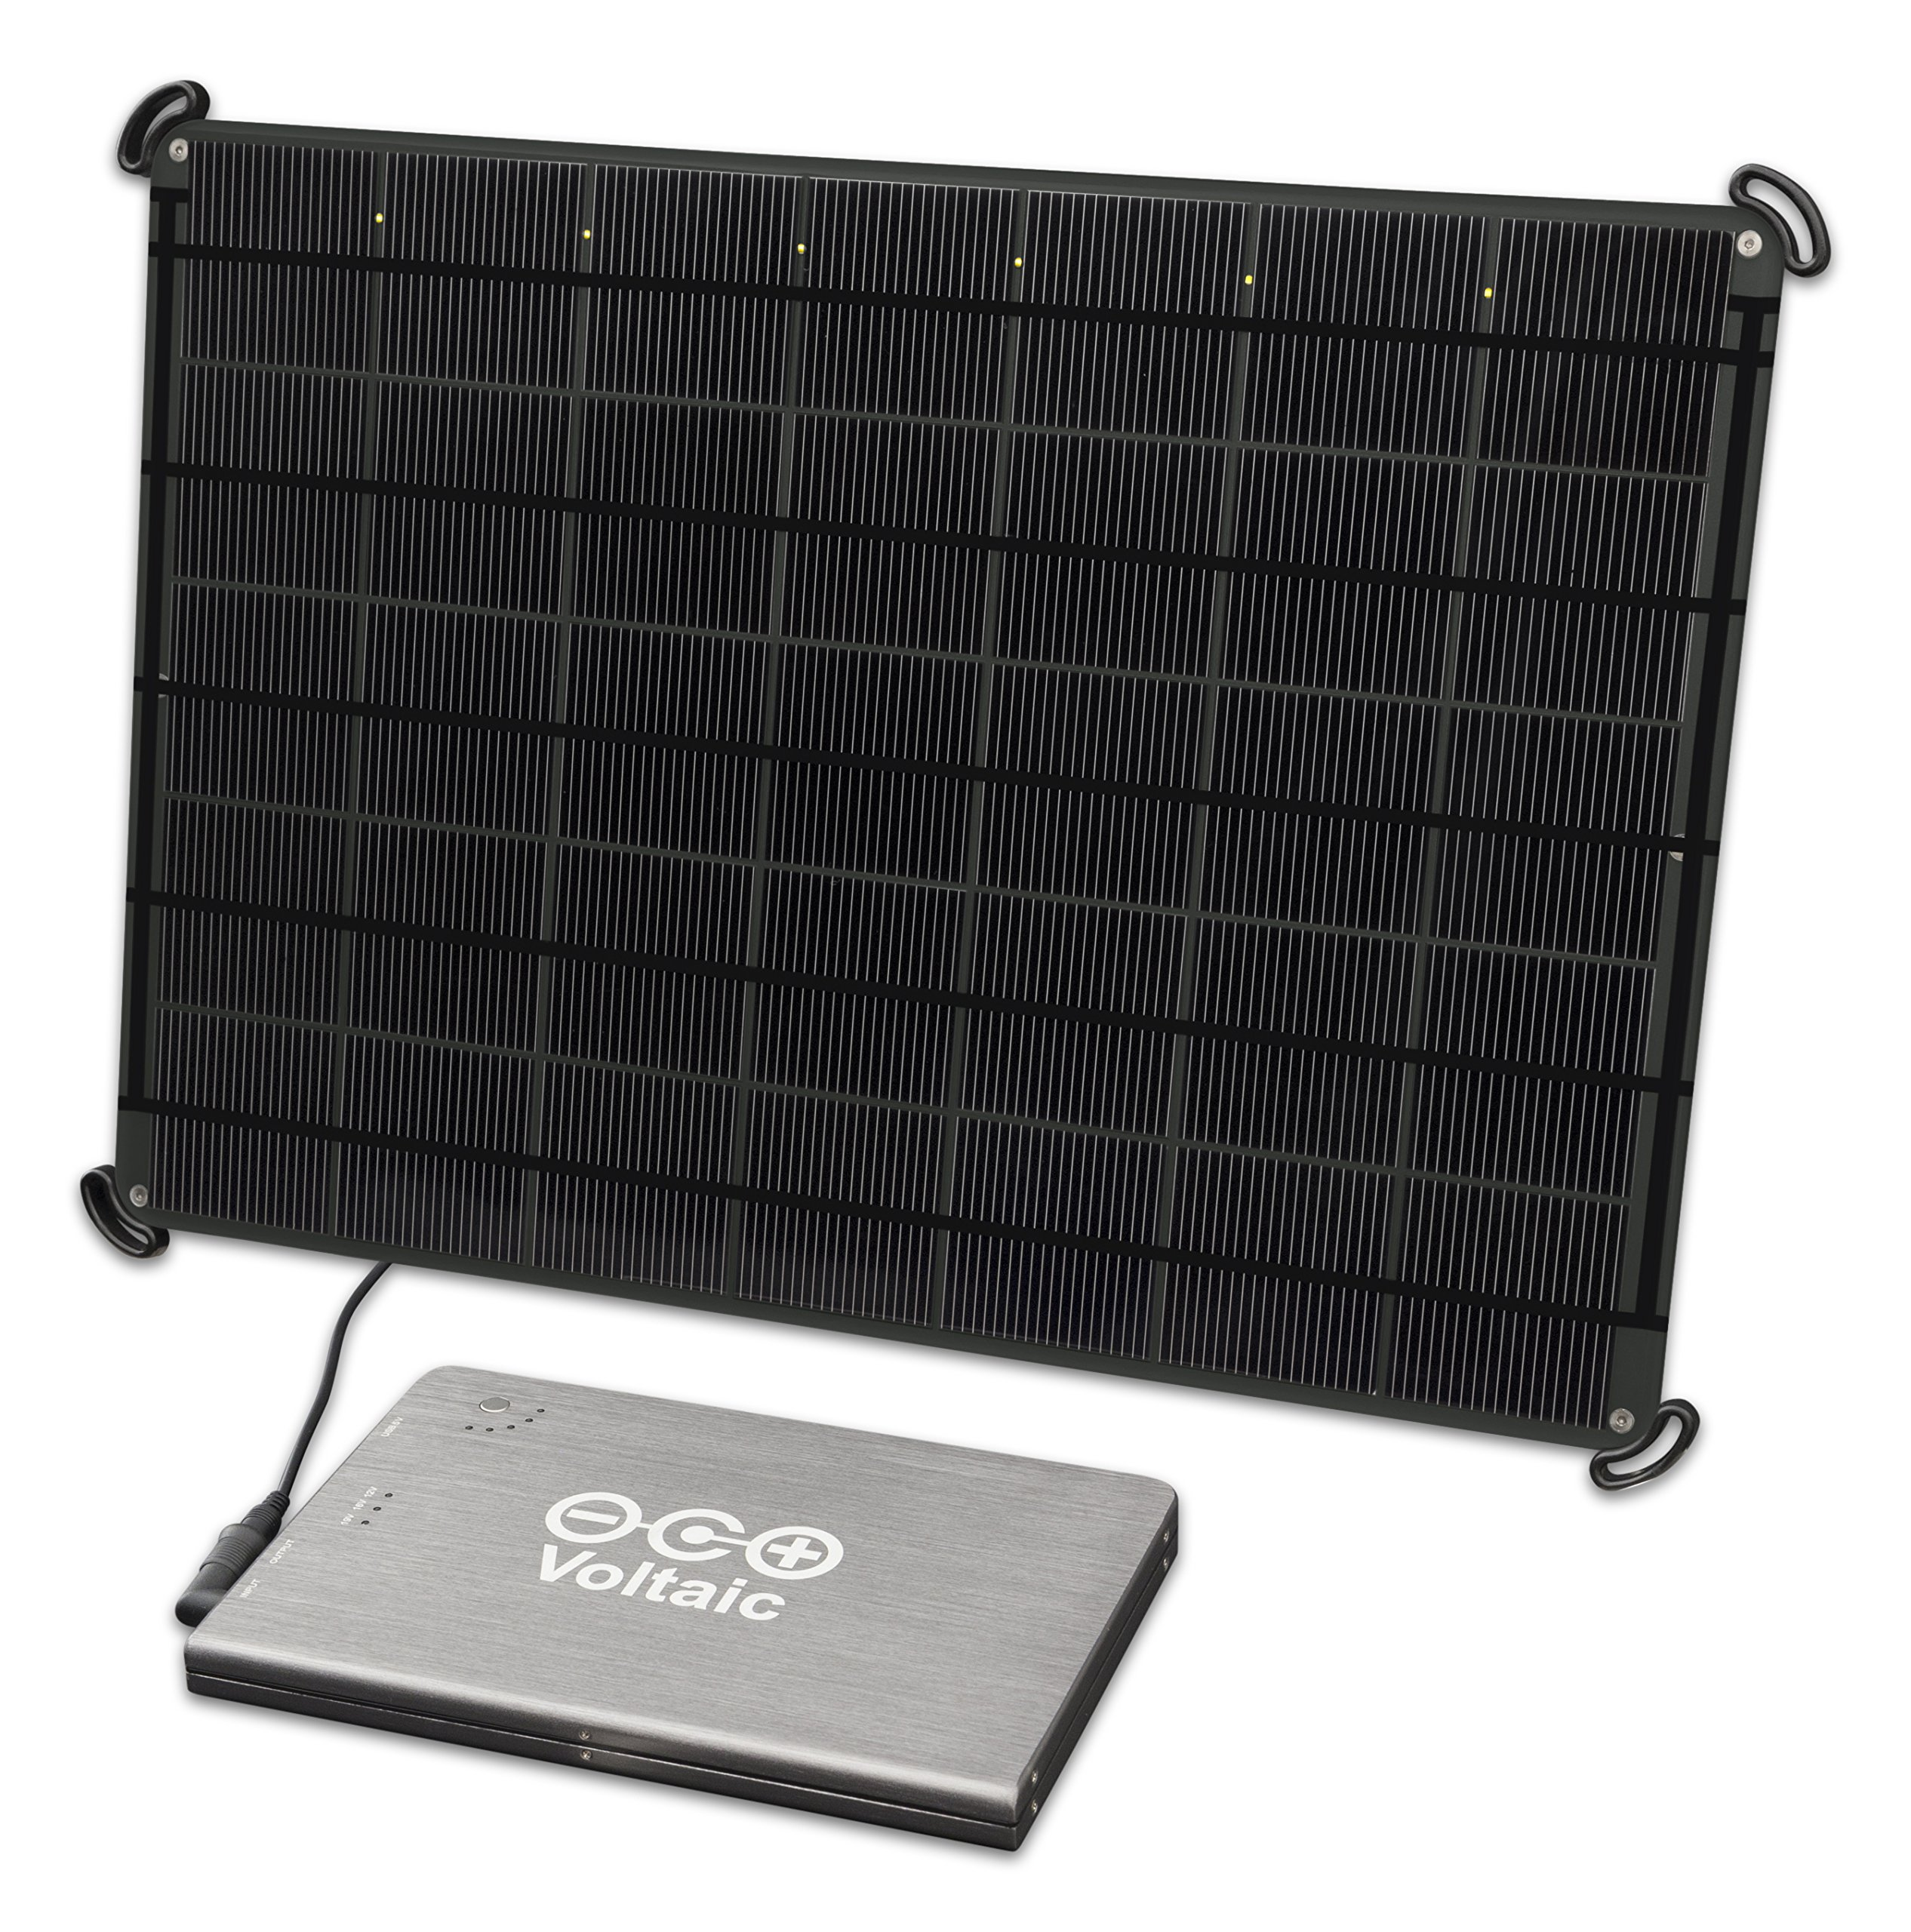 Voltaic Systems - 17 Watt Solar Laptop Charger Kit with Backup Battery Pack | Powers Laptops, Phones & USB Devices | Solar Charge your Laptop Anywhere (Charcoal) by Voltaic Systems